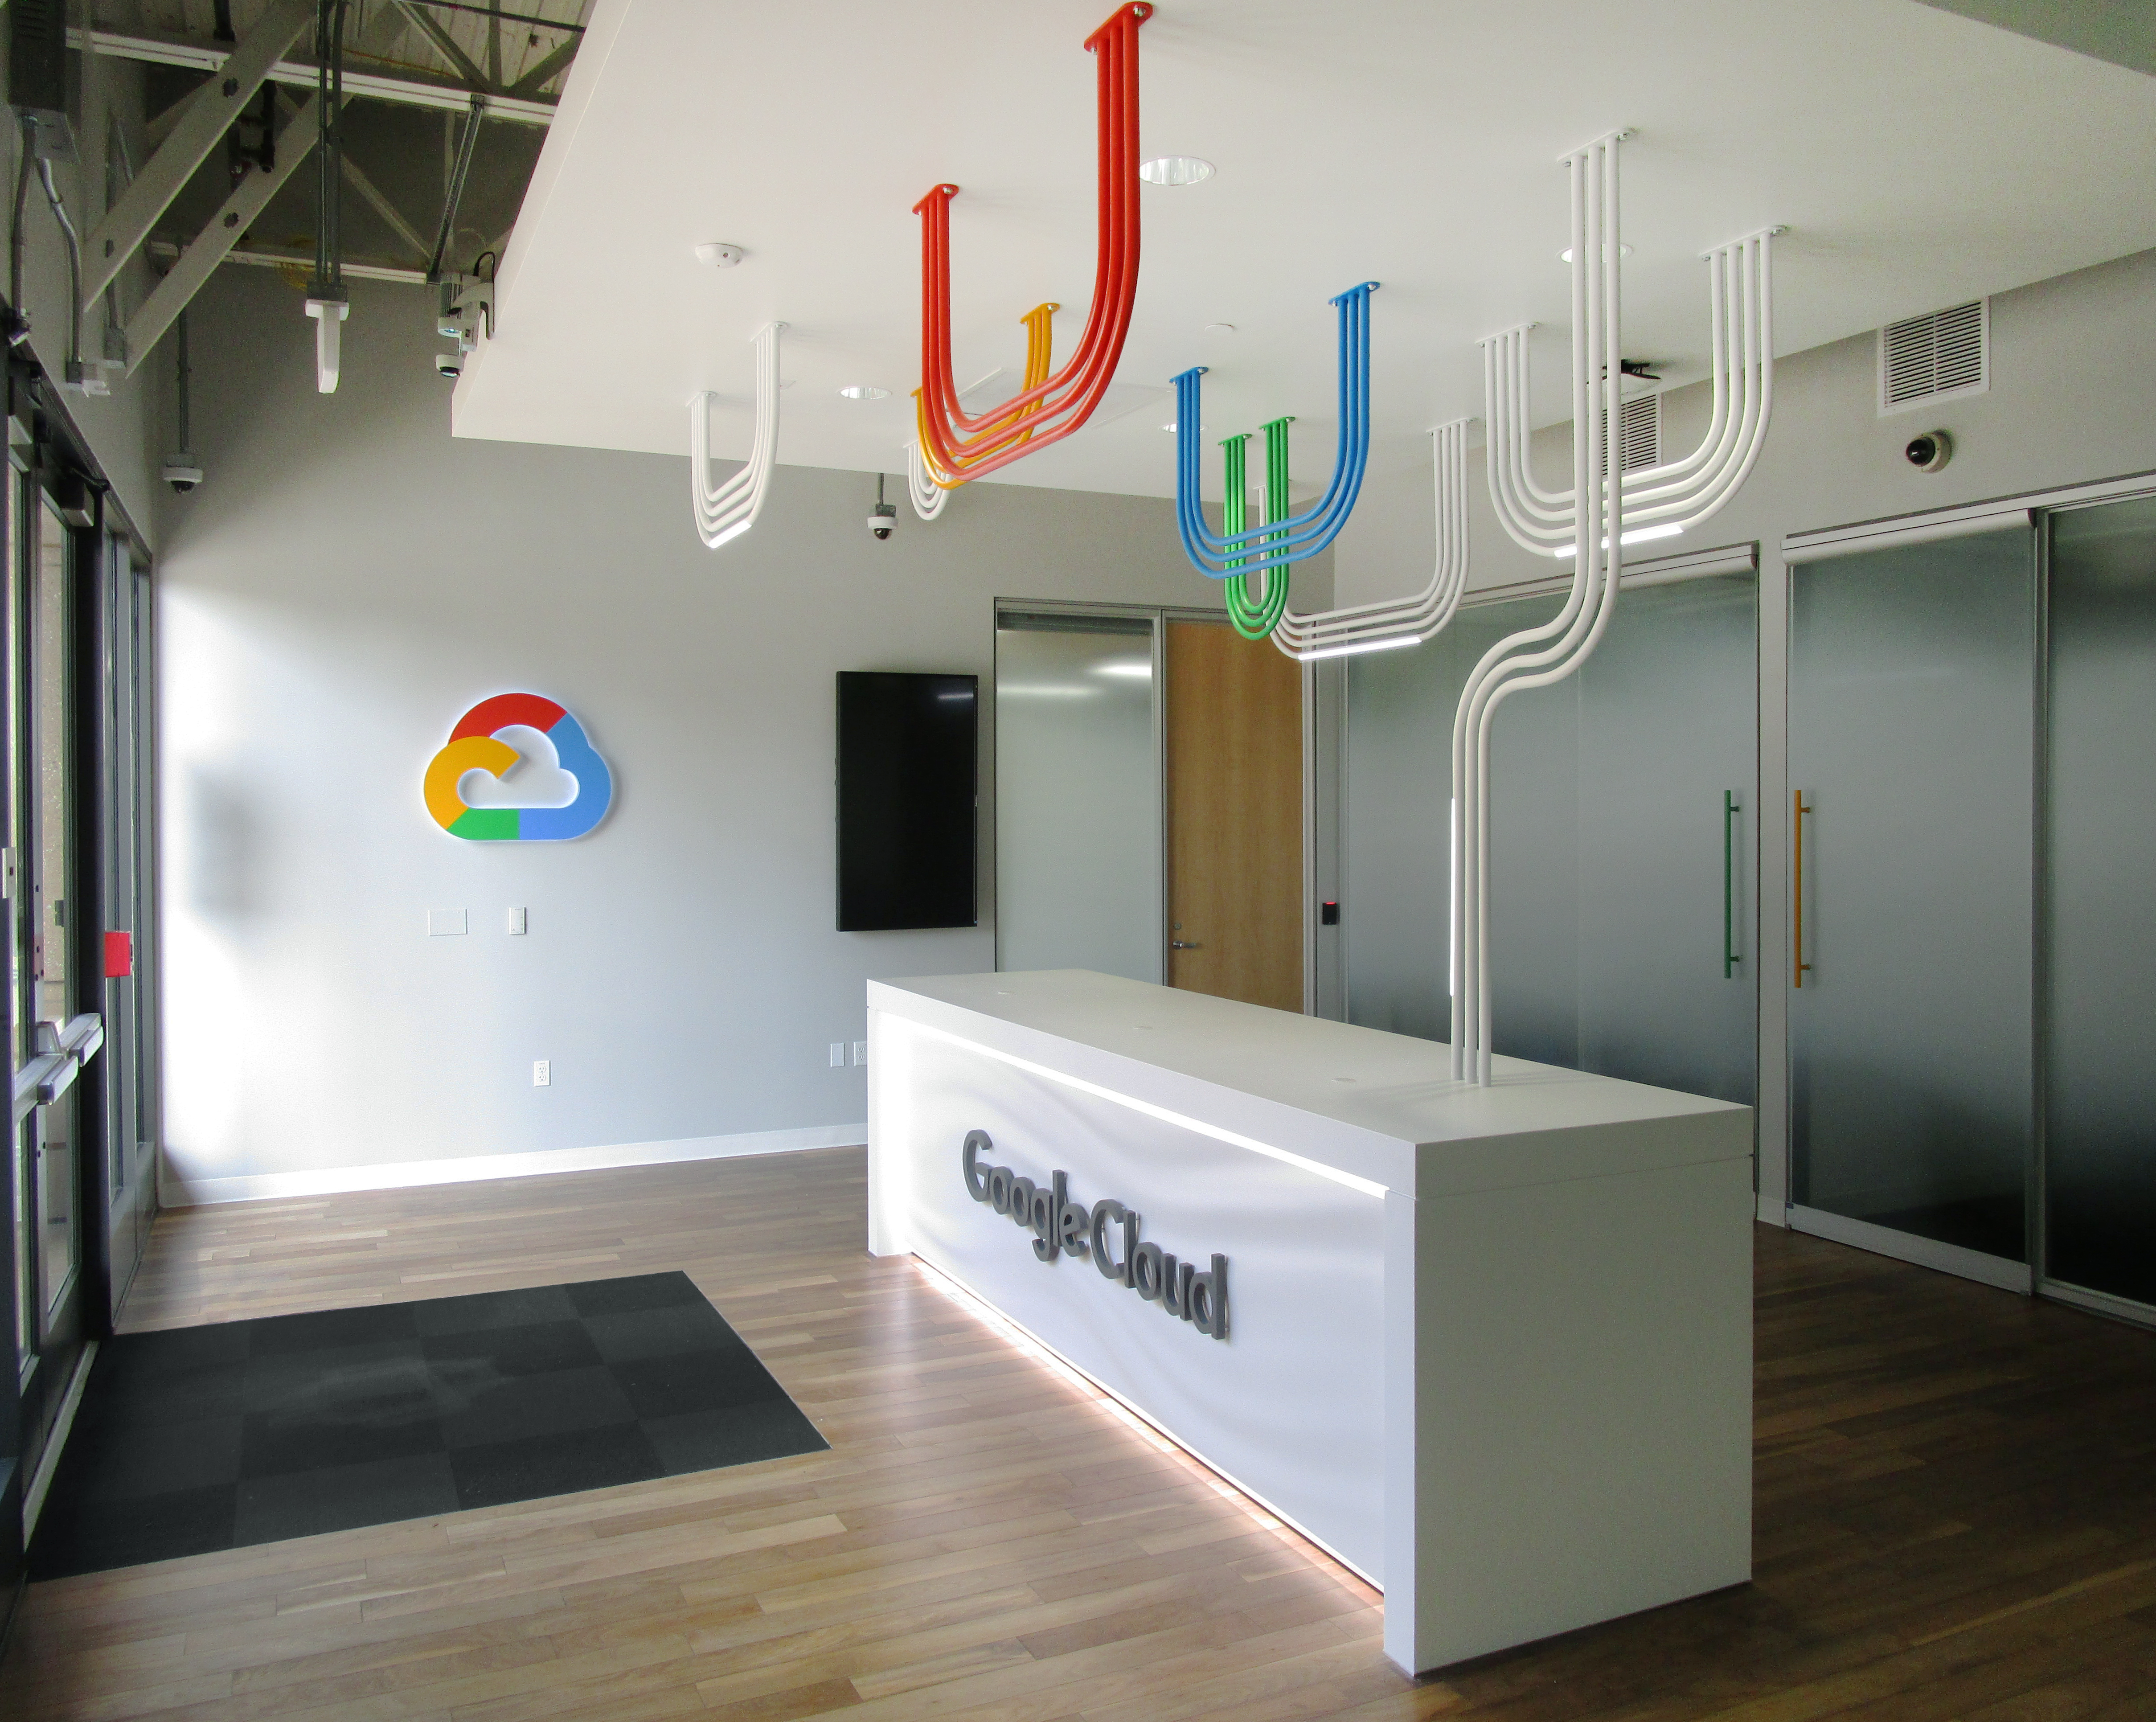 Google cloud reception counter with google cloud logo on the wall and pipes to create clouds above desk